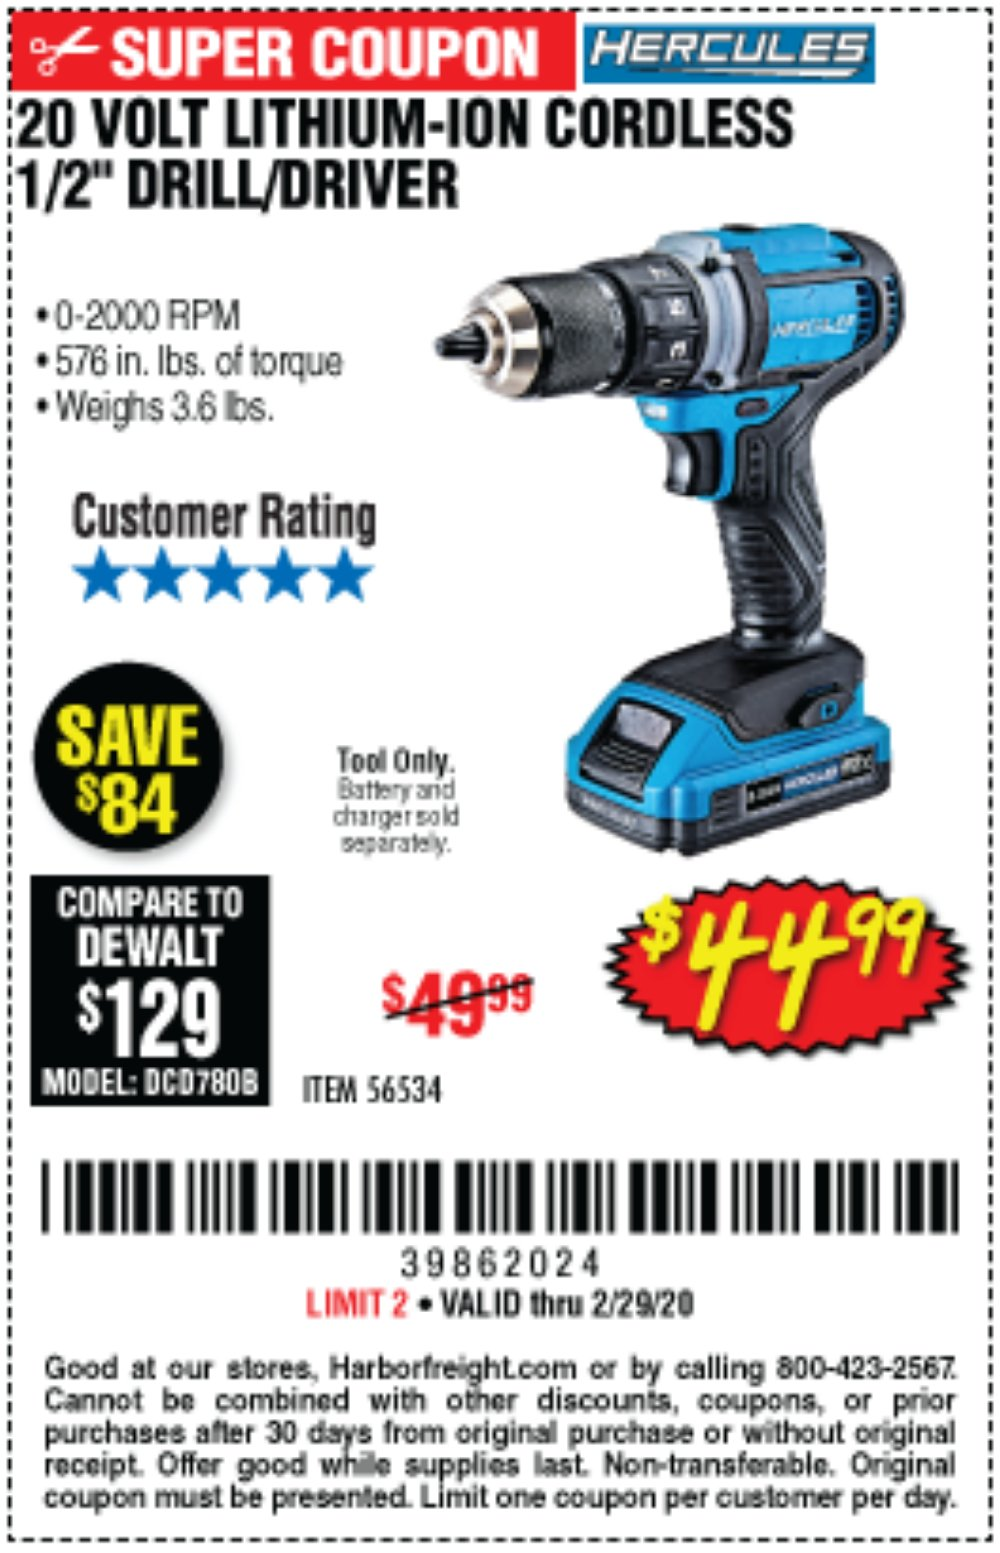 Harbor Freight Coupon, HF Coupons - Hercules 20 Volt Lithium-ion Cordless 1/2